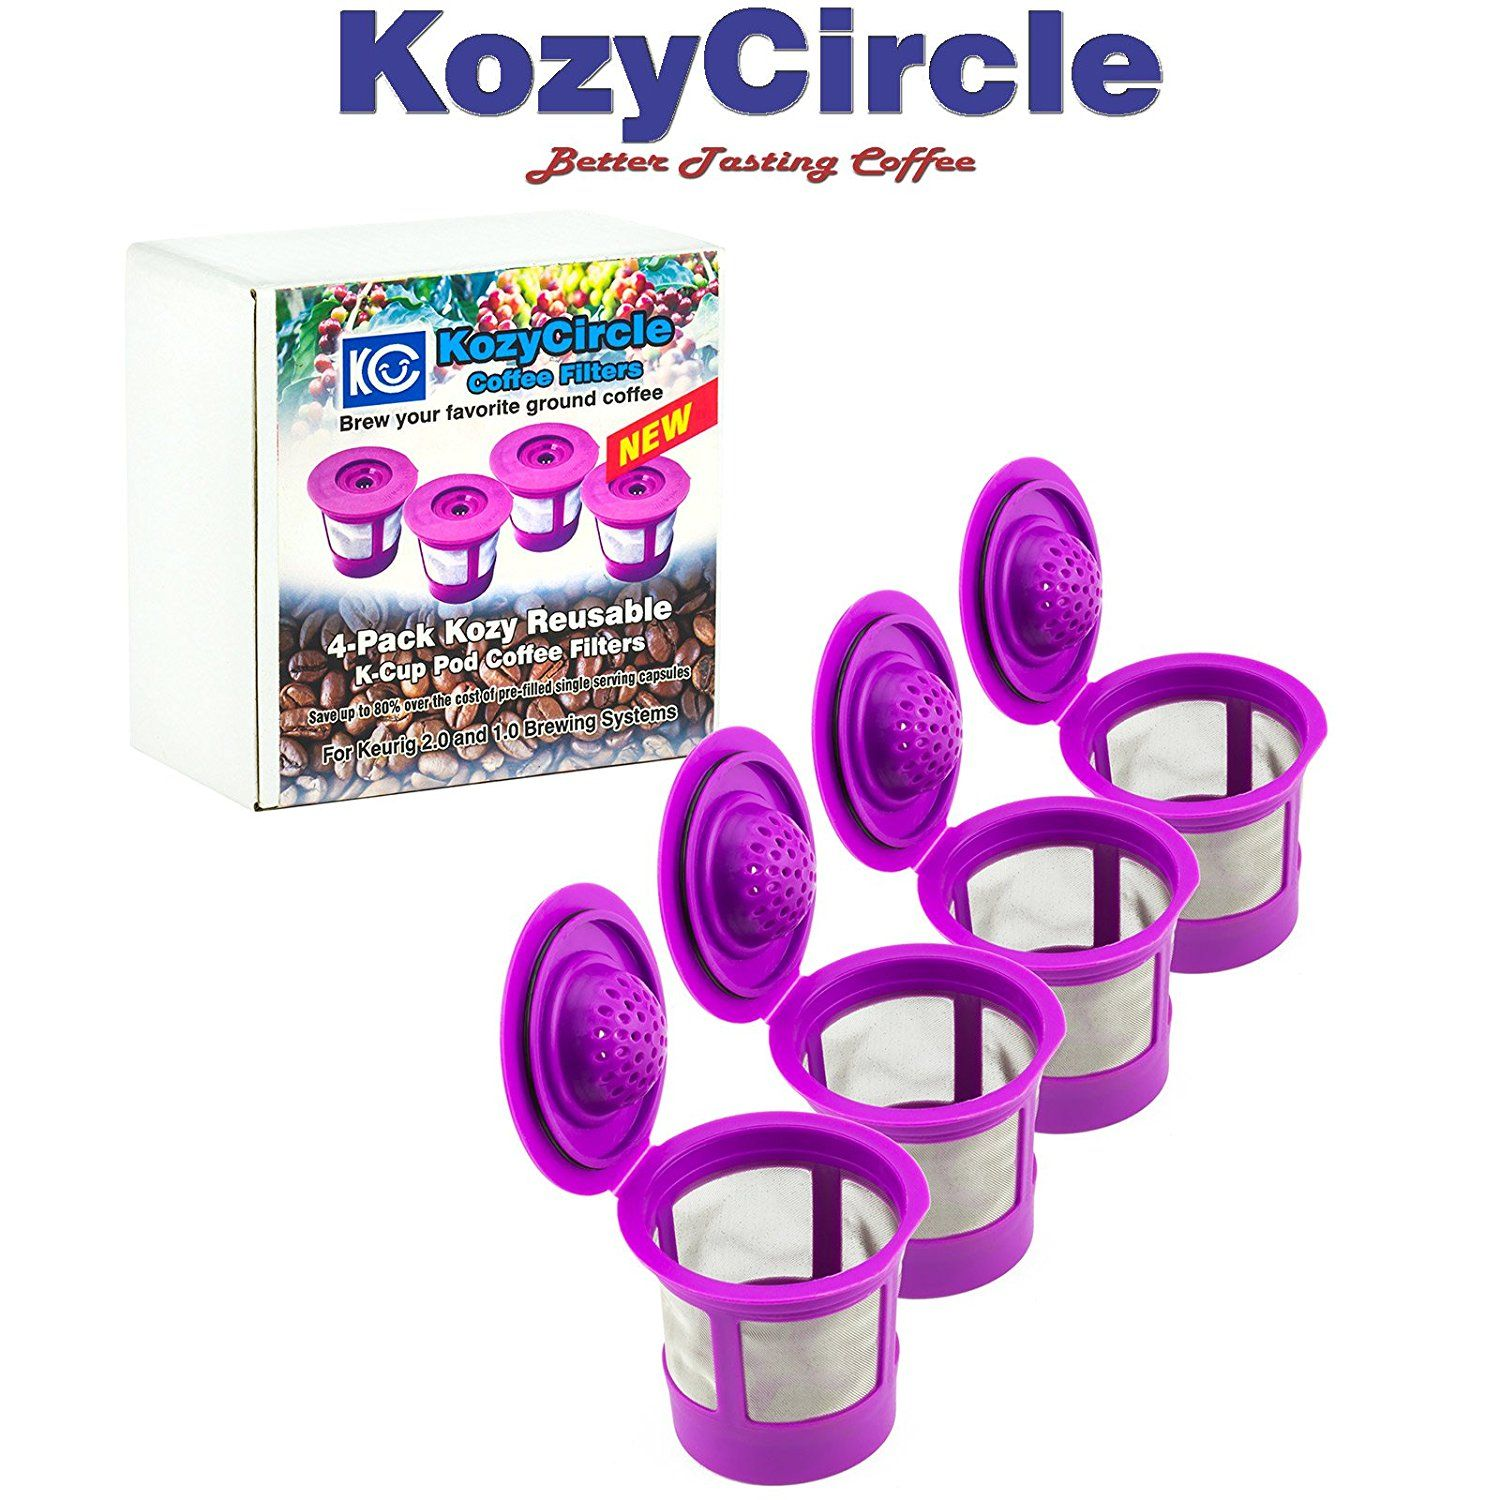 4pack reusable refillable single kcup for keurig 20